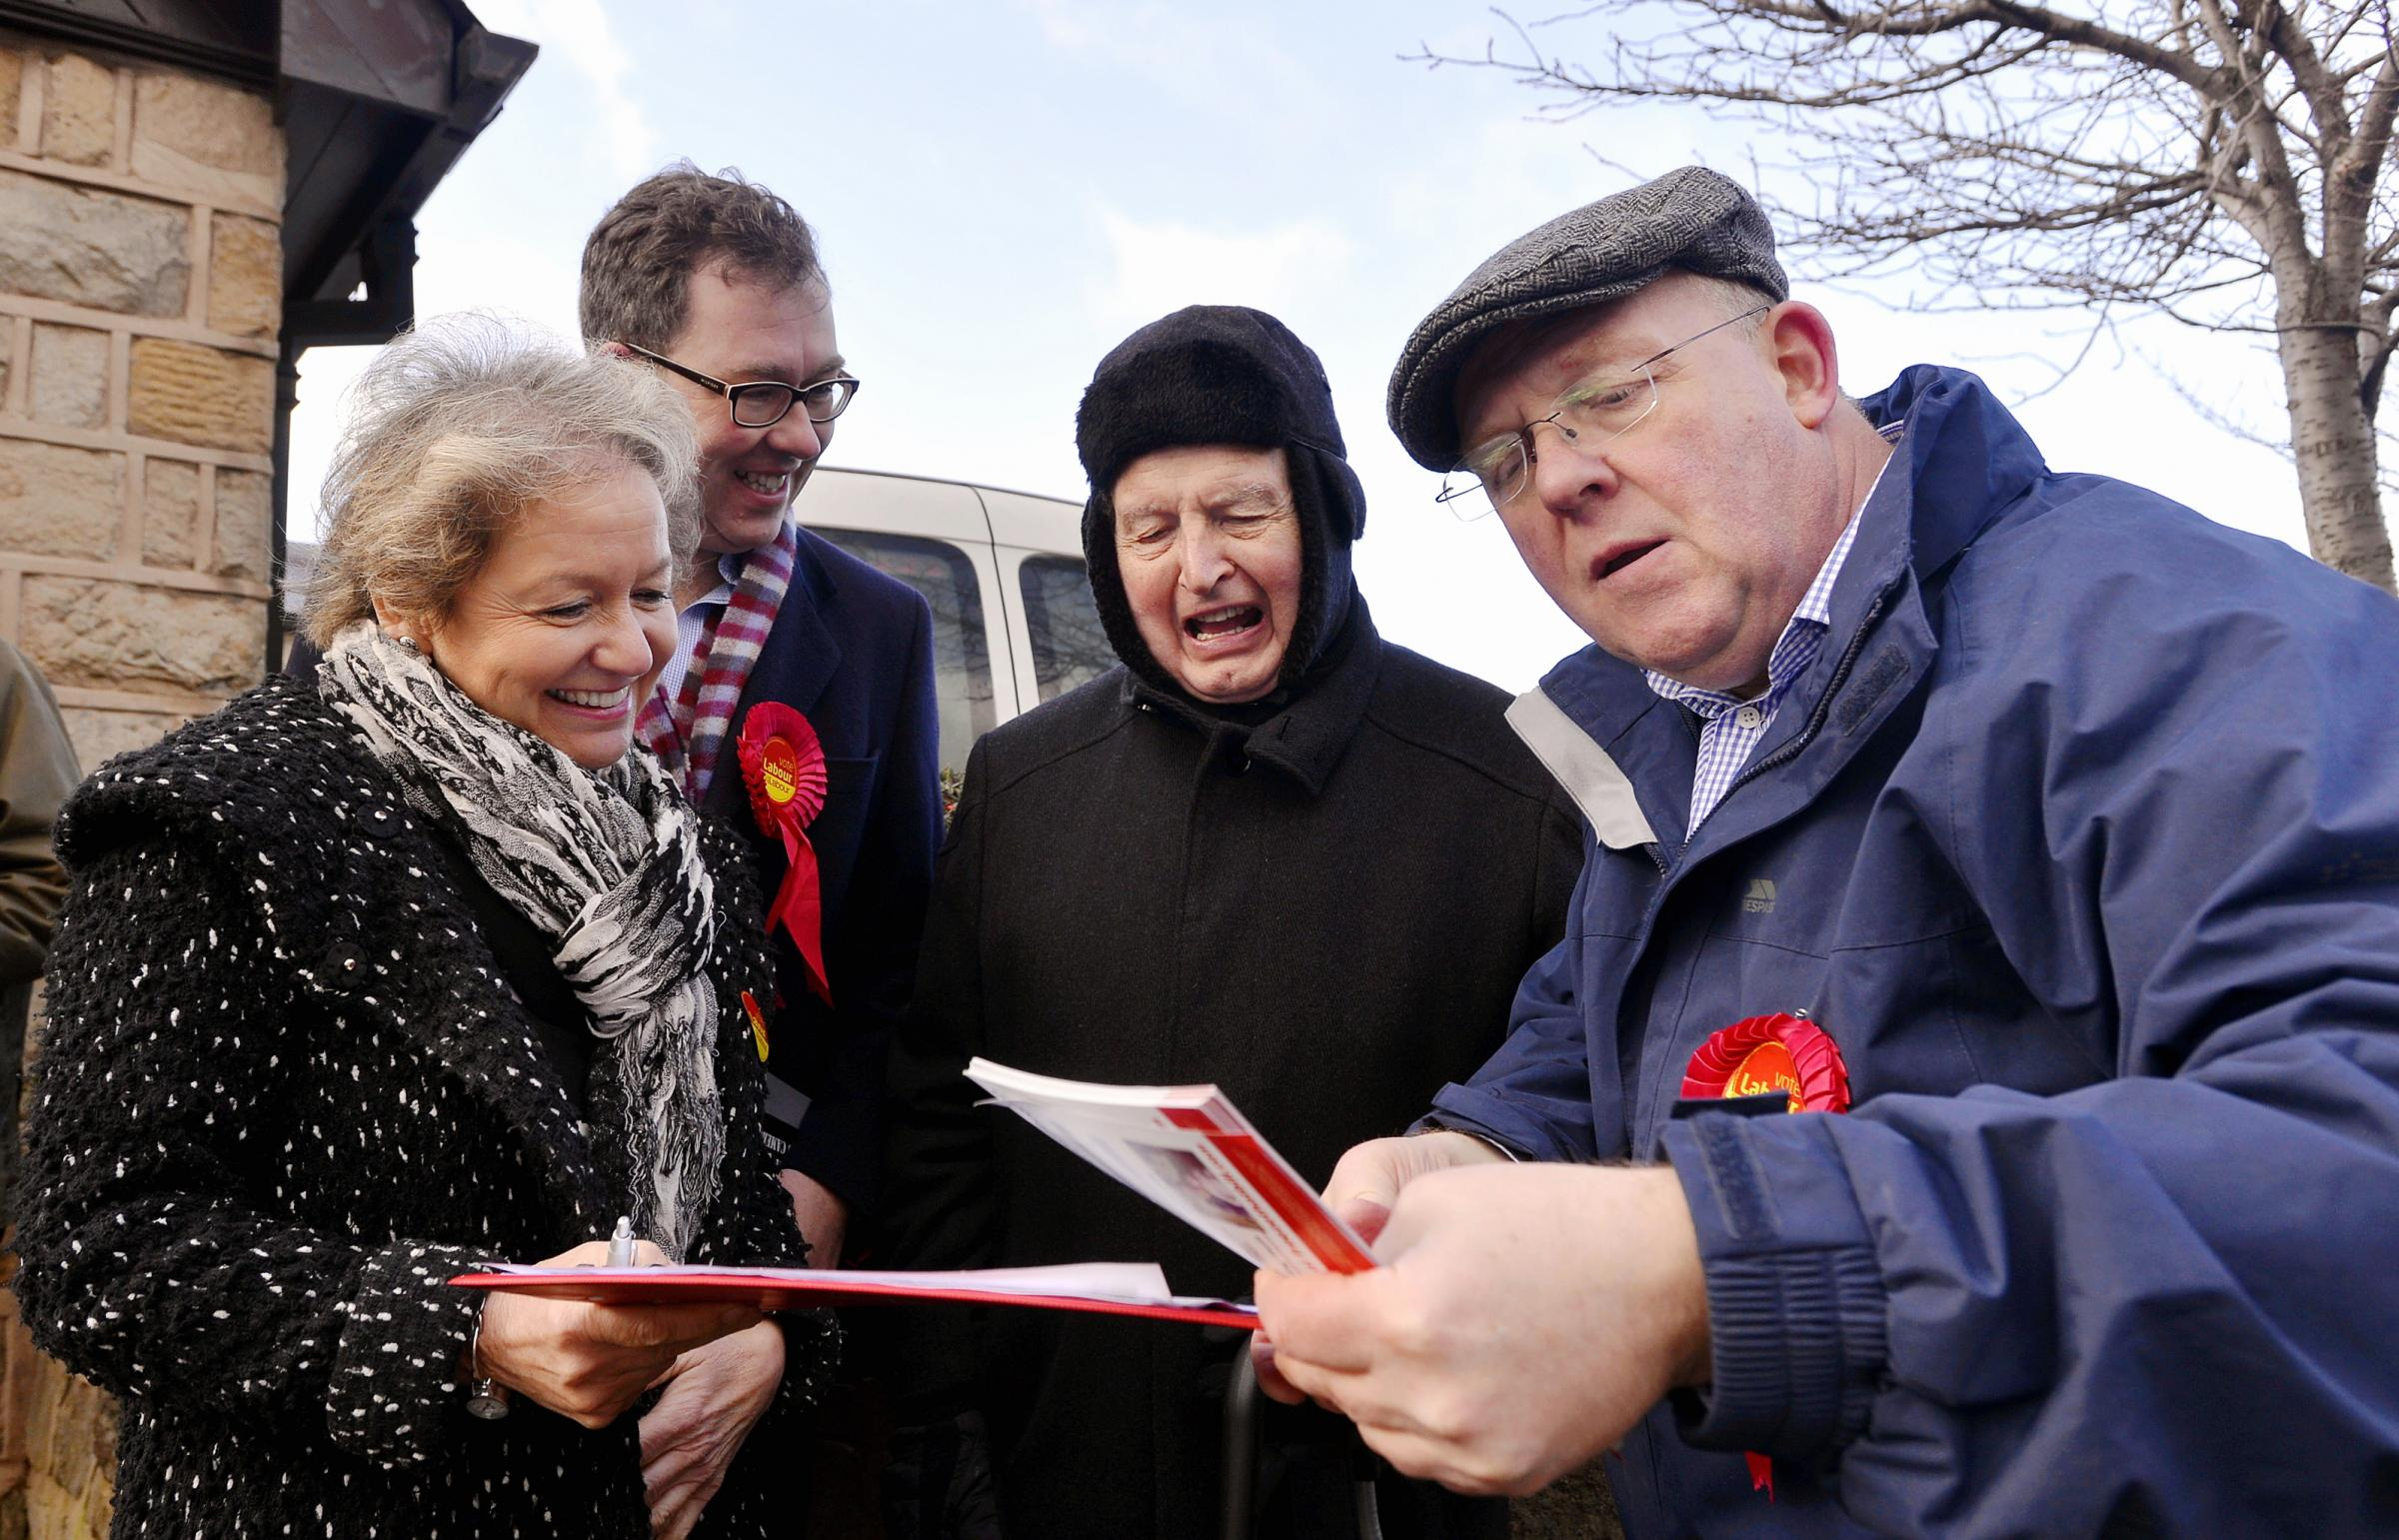 From left, Labour Party chief whip Rosie Winterton and prospective parliamentary candidate Jamie Hanley, with Wallace Cooper and David Bowe, campaigning in Guiseley against the rising cost of energy prices